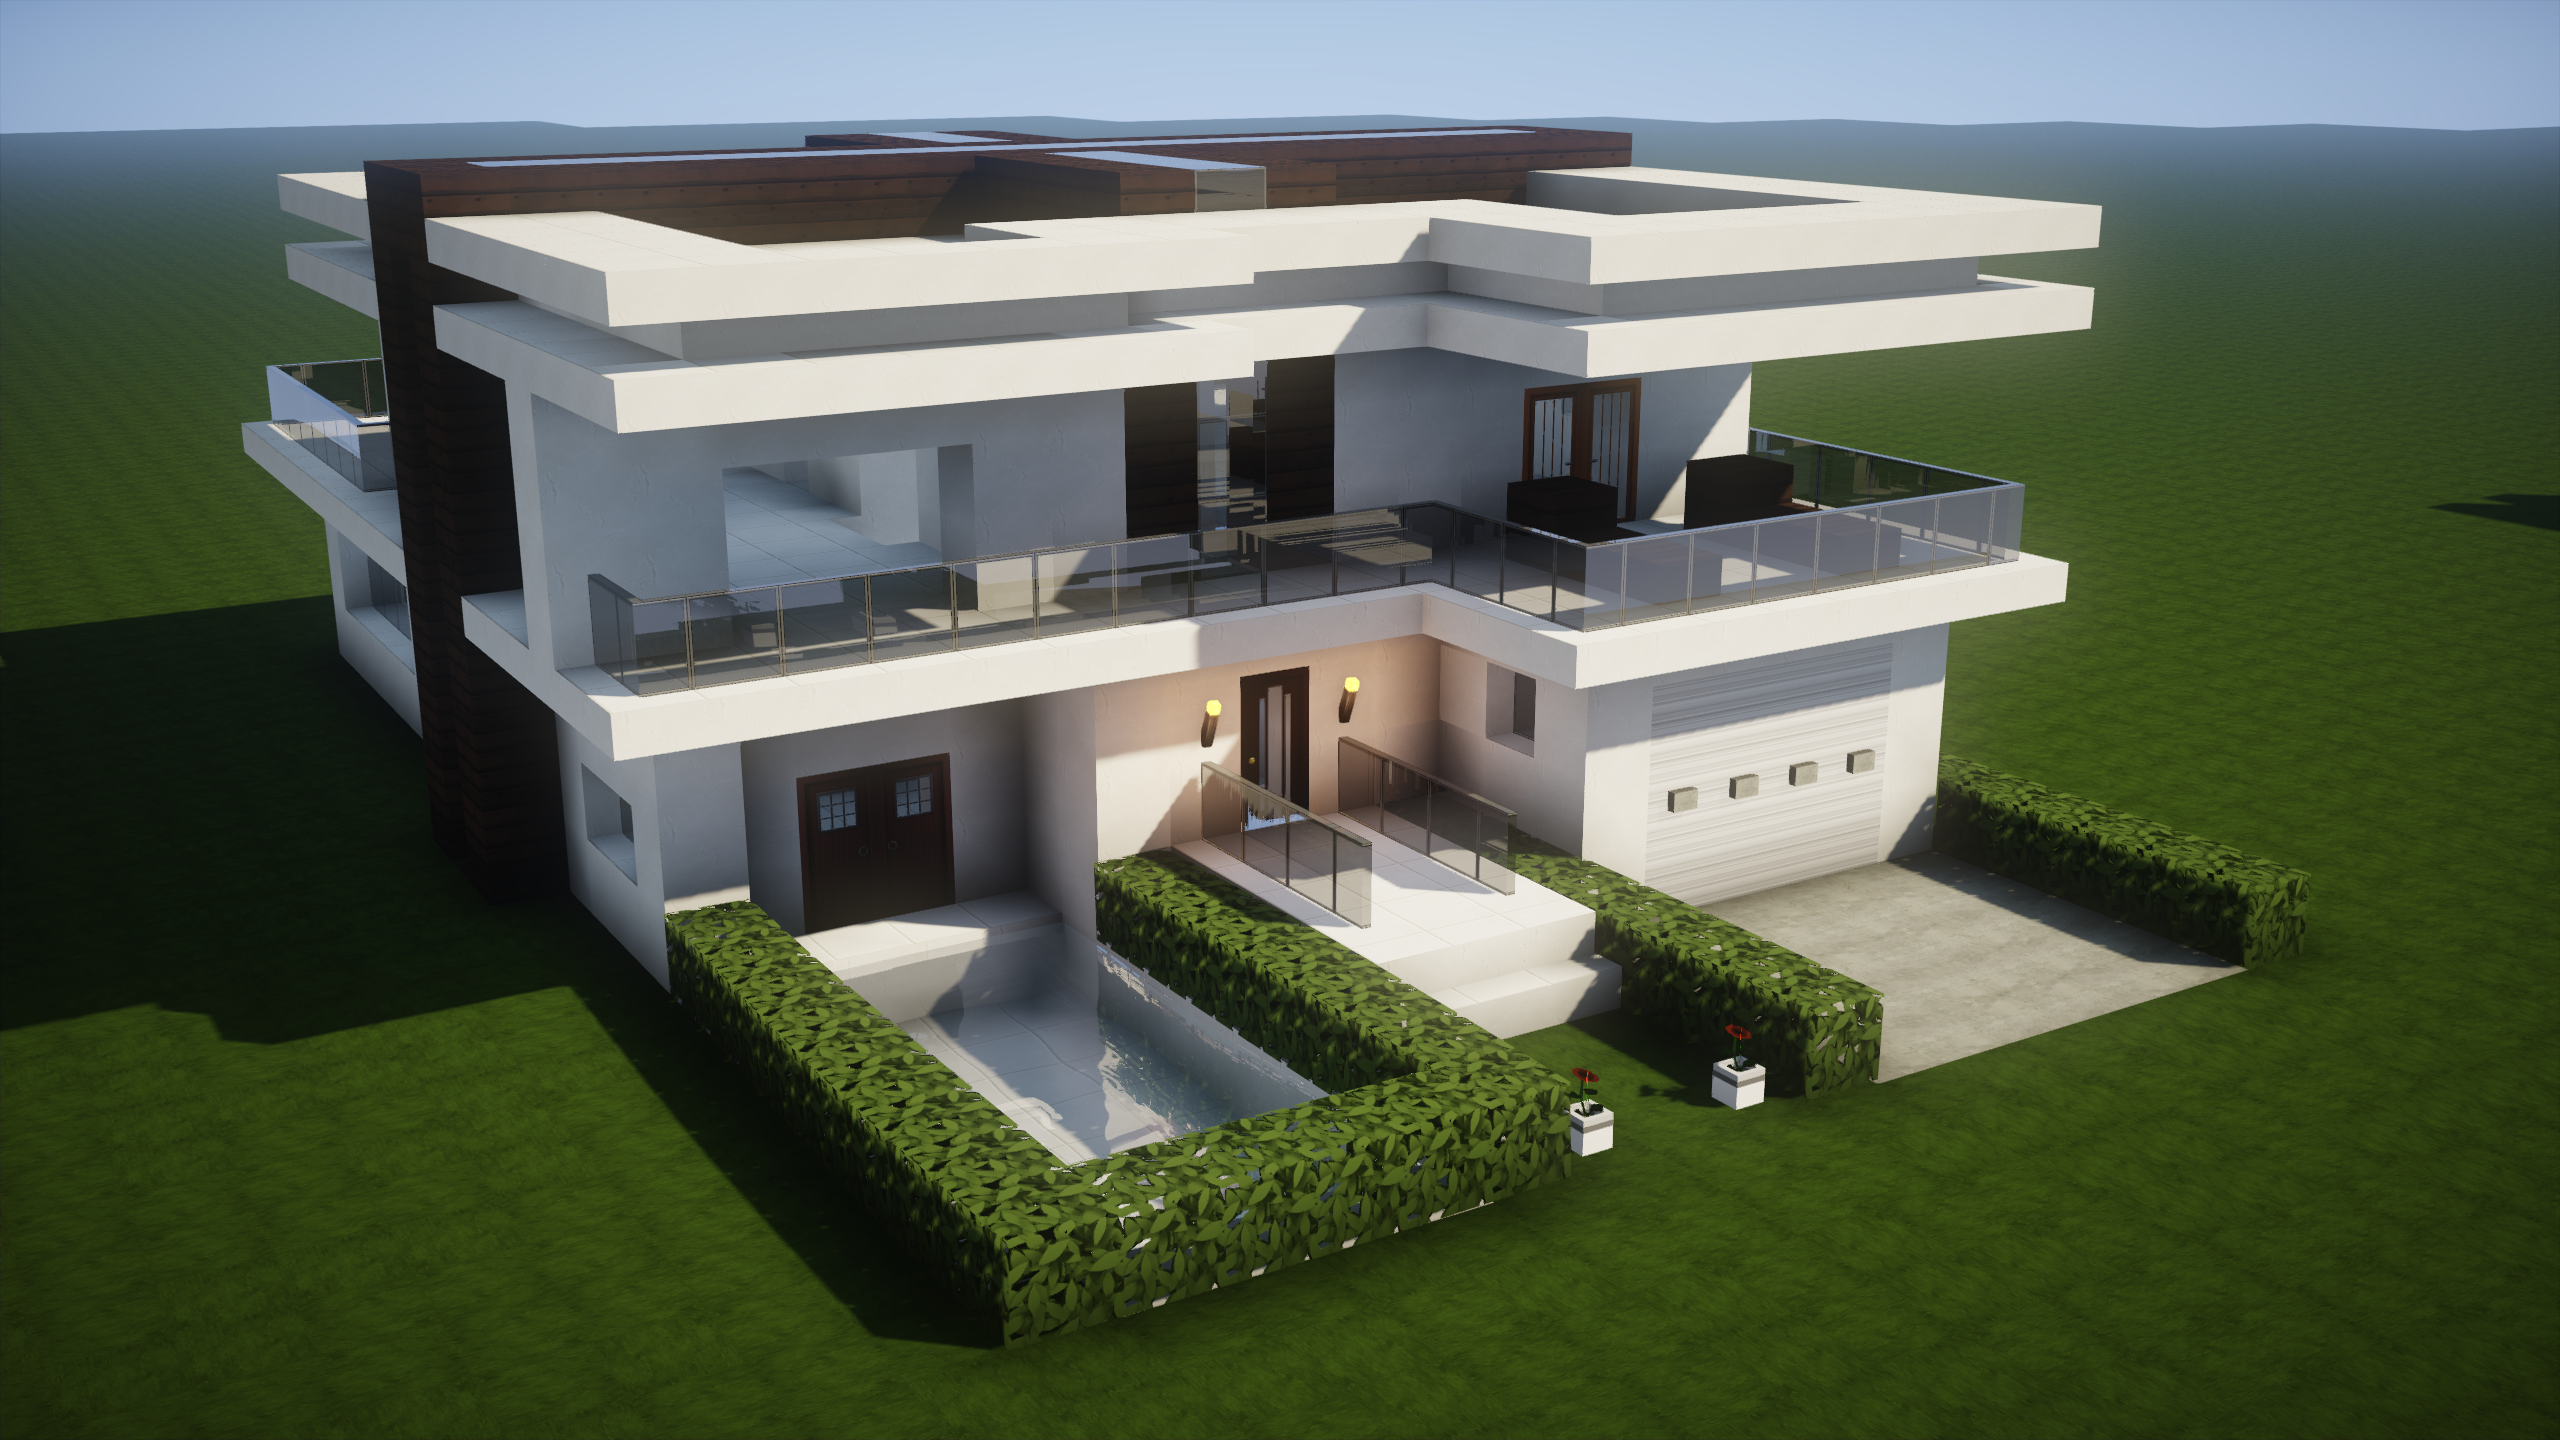 How to build a modern house in minecraft > 2016RISKSUMMIT.ORG